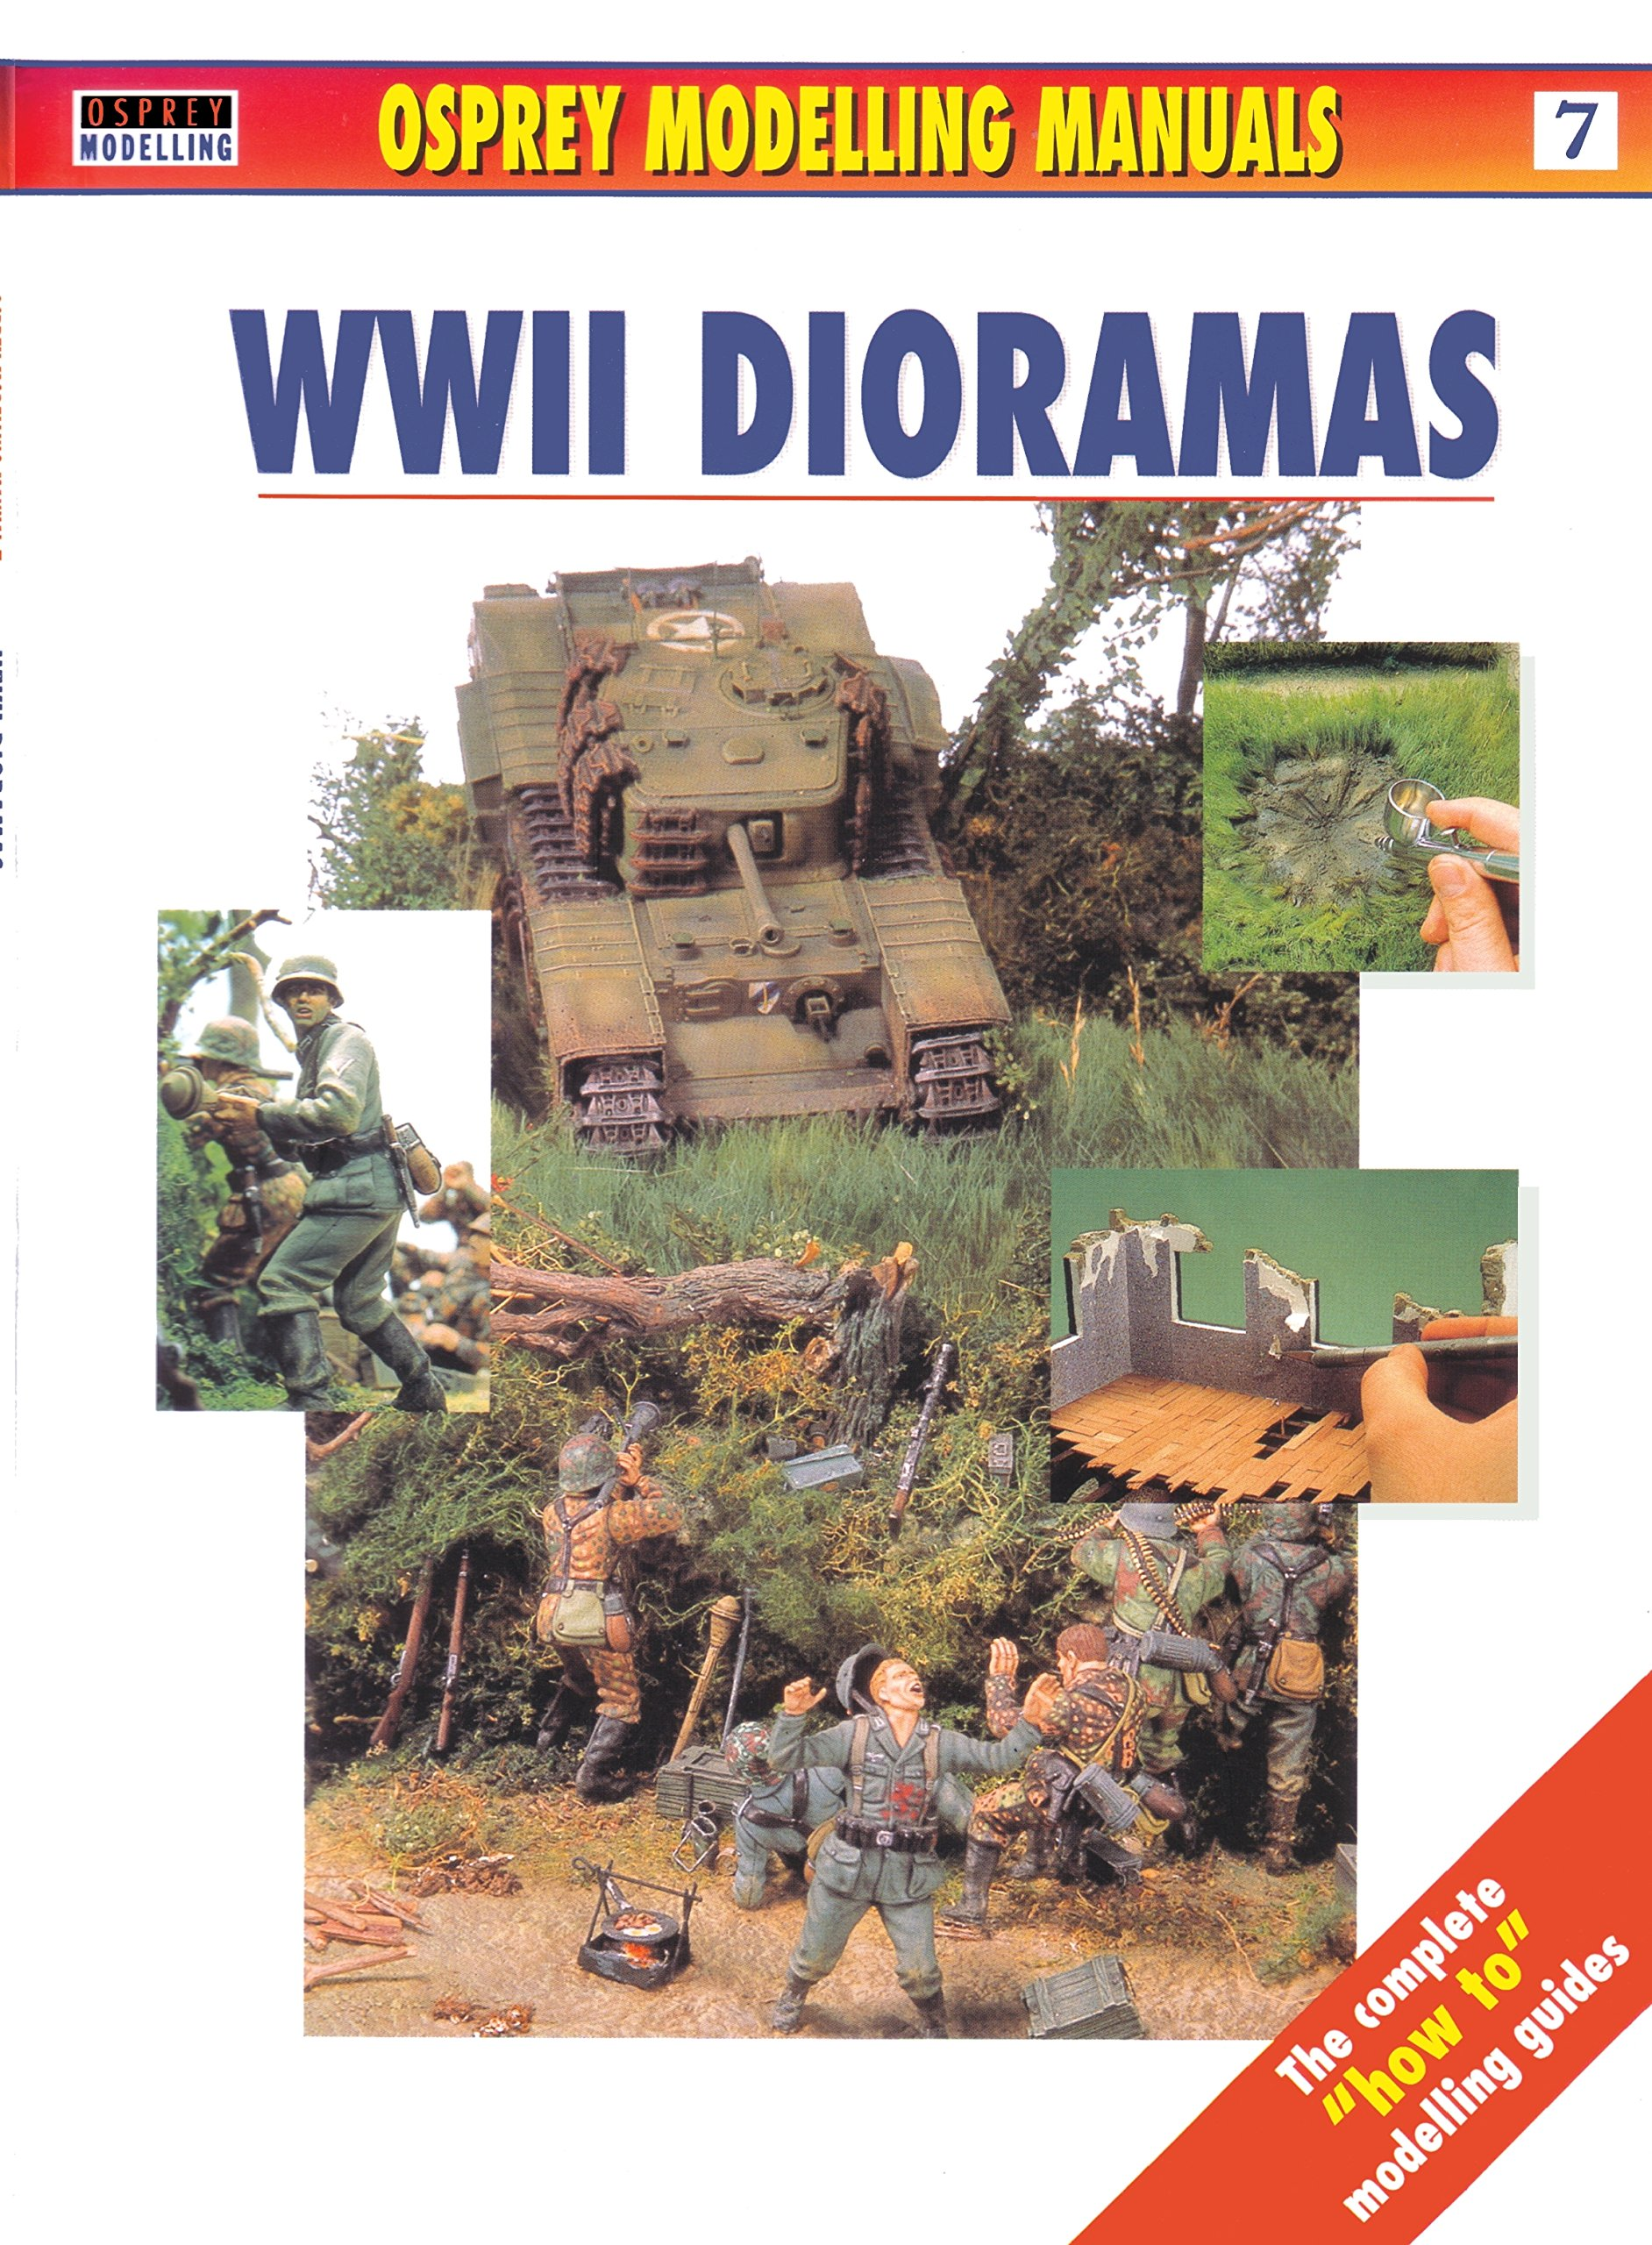 Wwii dioramas modelling manuals jerry scutts 9781902579214 wwii dioramas modelling manuals jerry scutts 9781902579214 amazon books fandeluxe